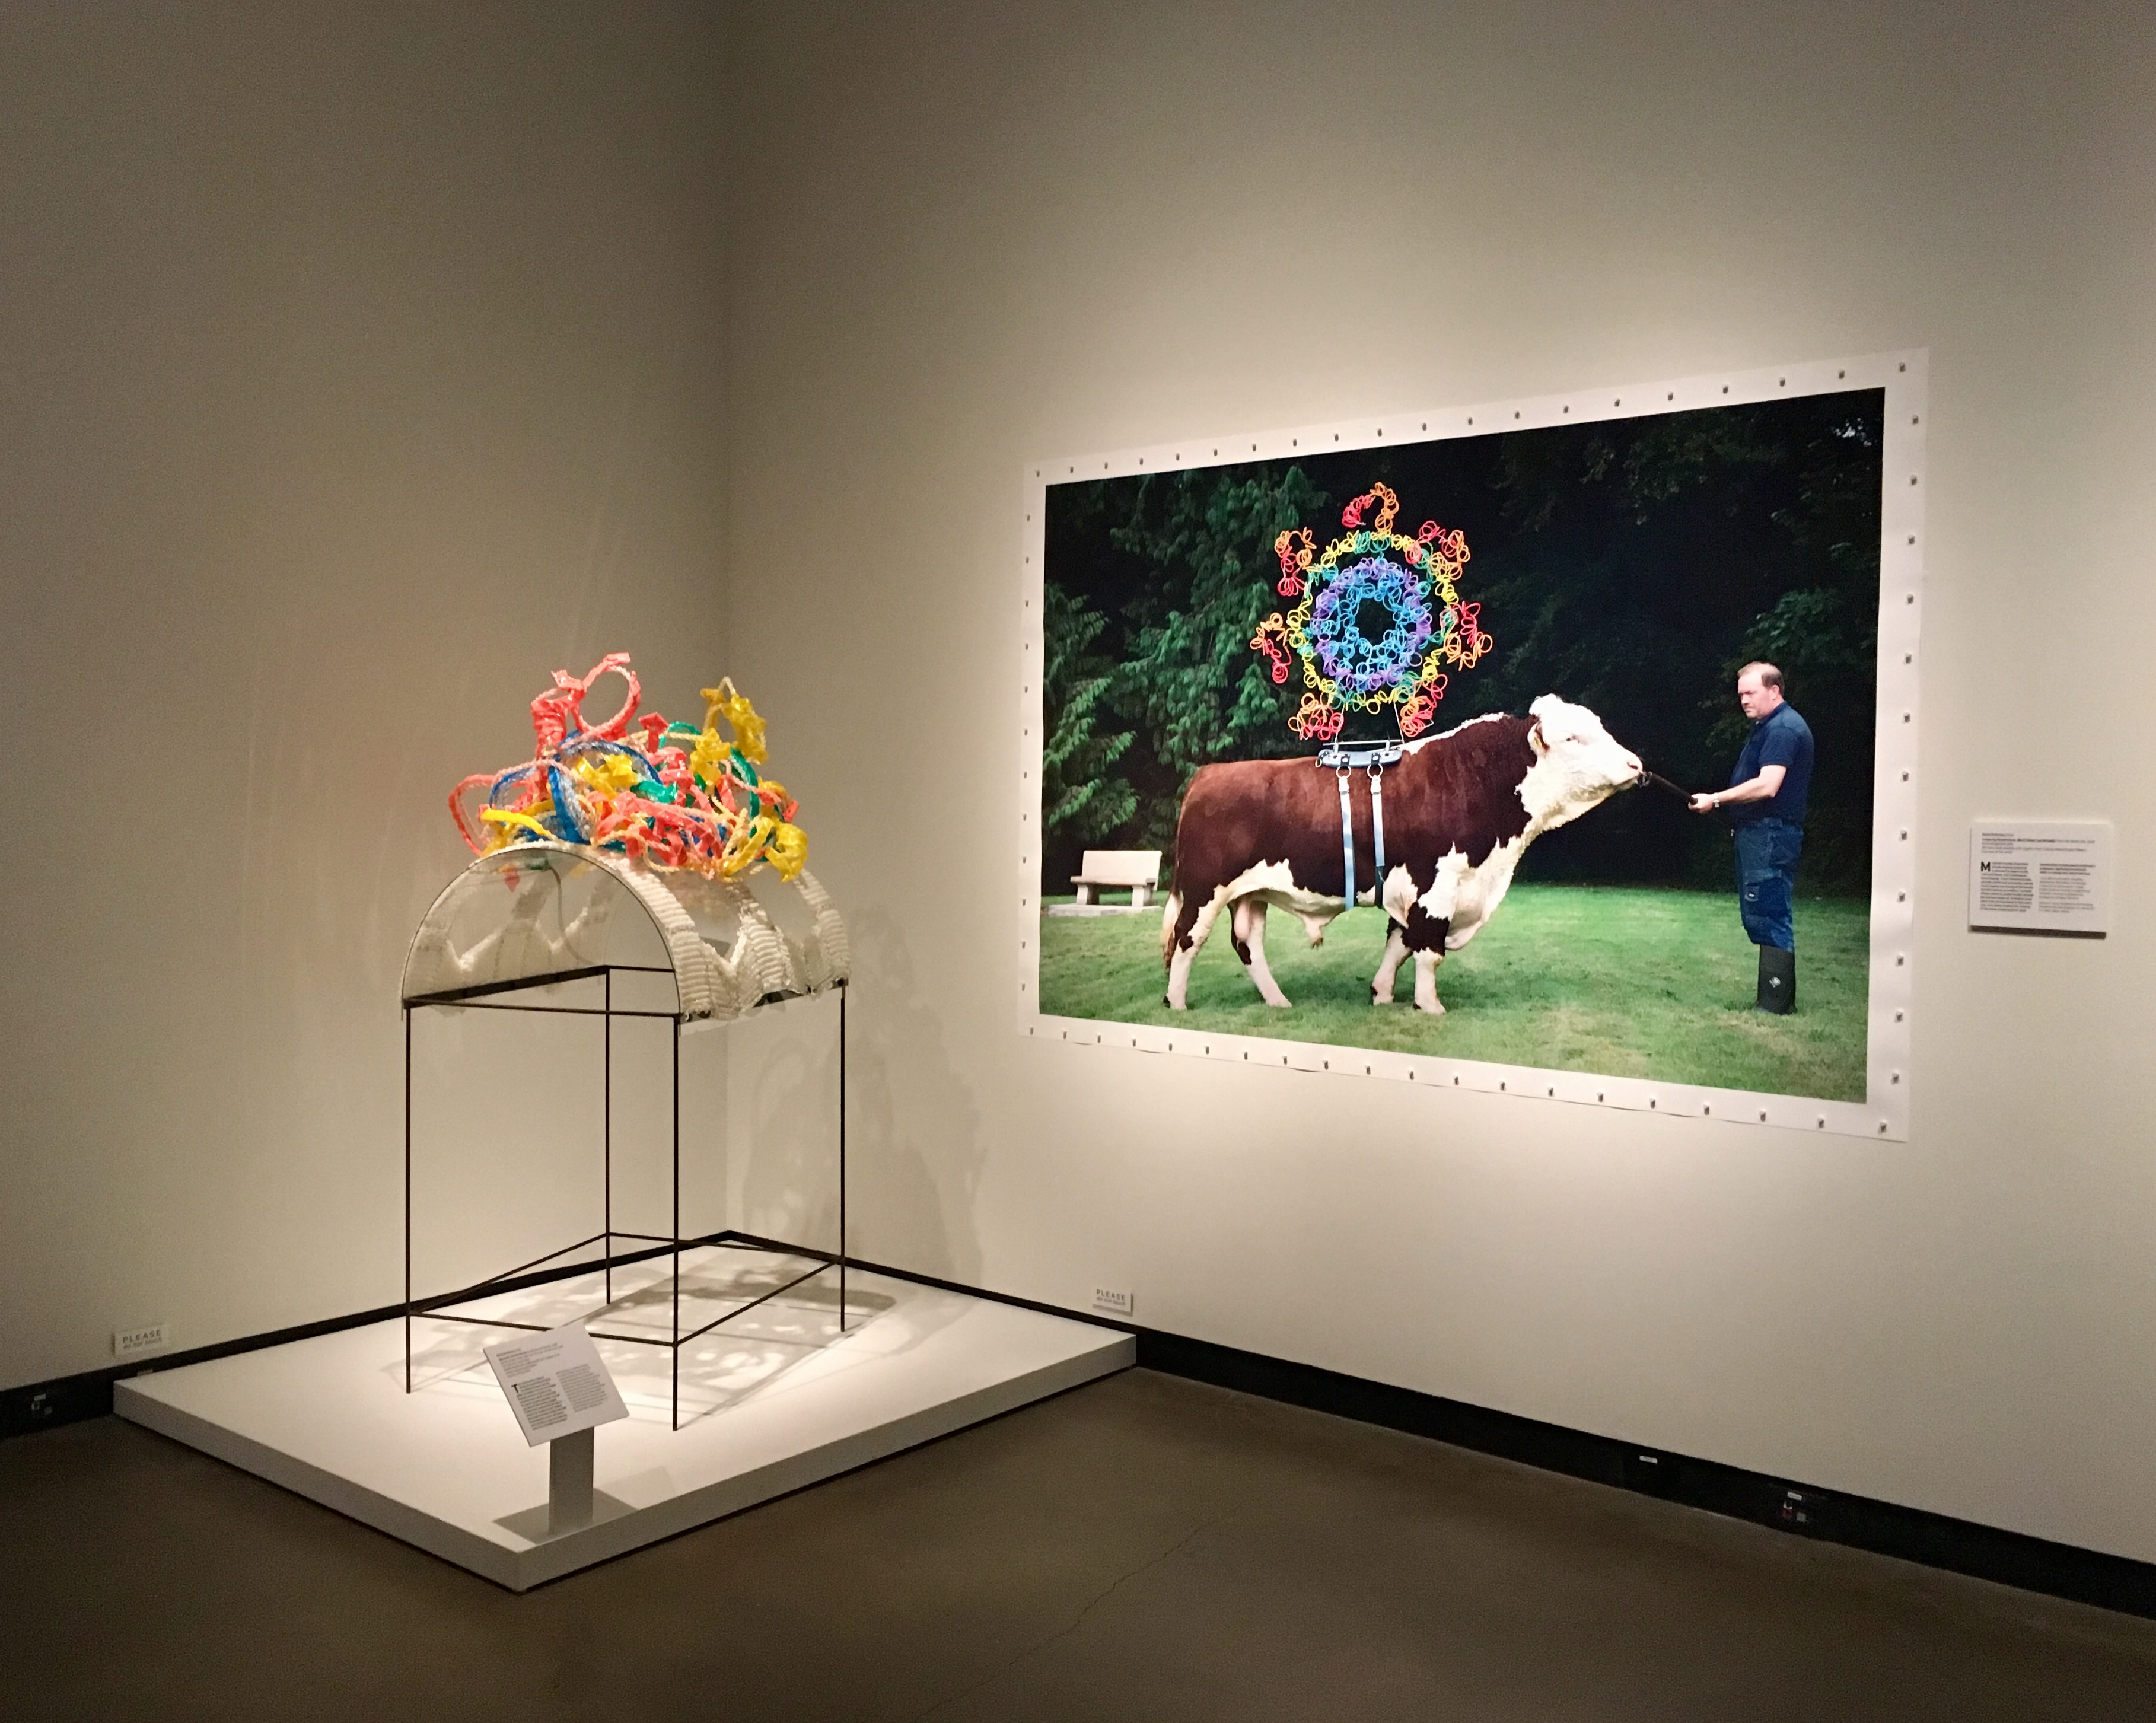 Maria McKinney, Longevity/Apoptosome, Black Water Lad (HE2067) [image] and Myostatin [sculpture], from the series Sire (2016). Image by Molly Renda, courtesy of the Gregg Museum of Art & Design.